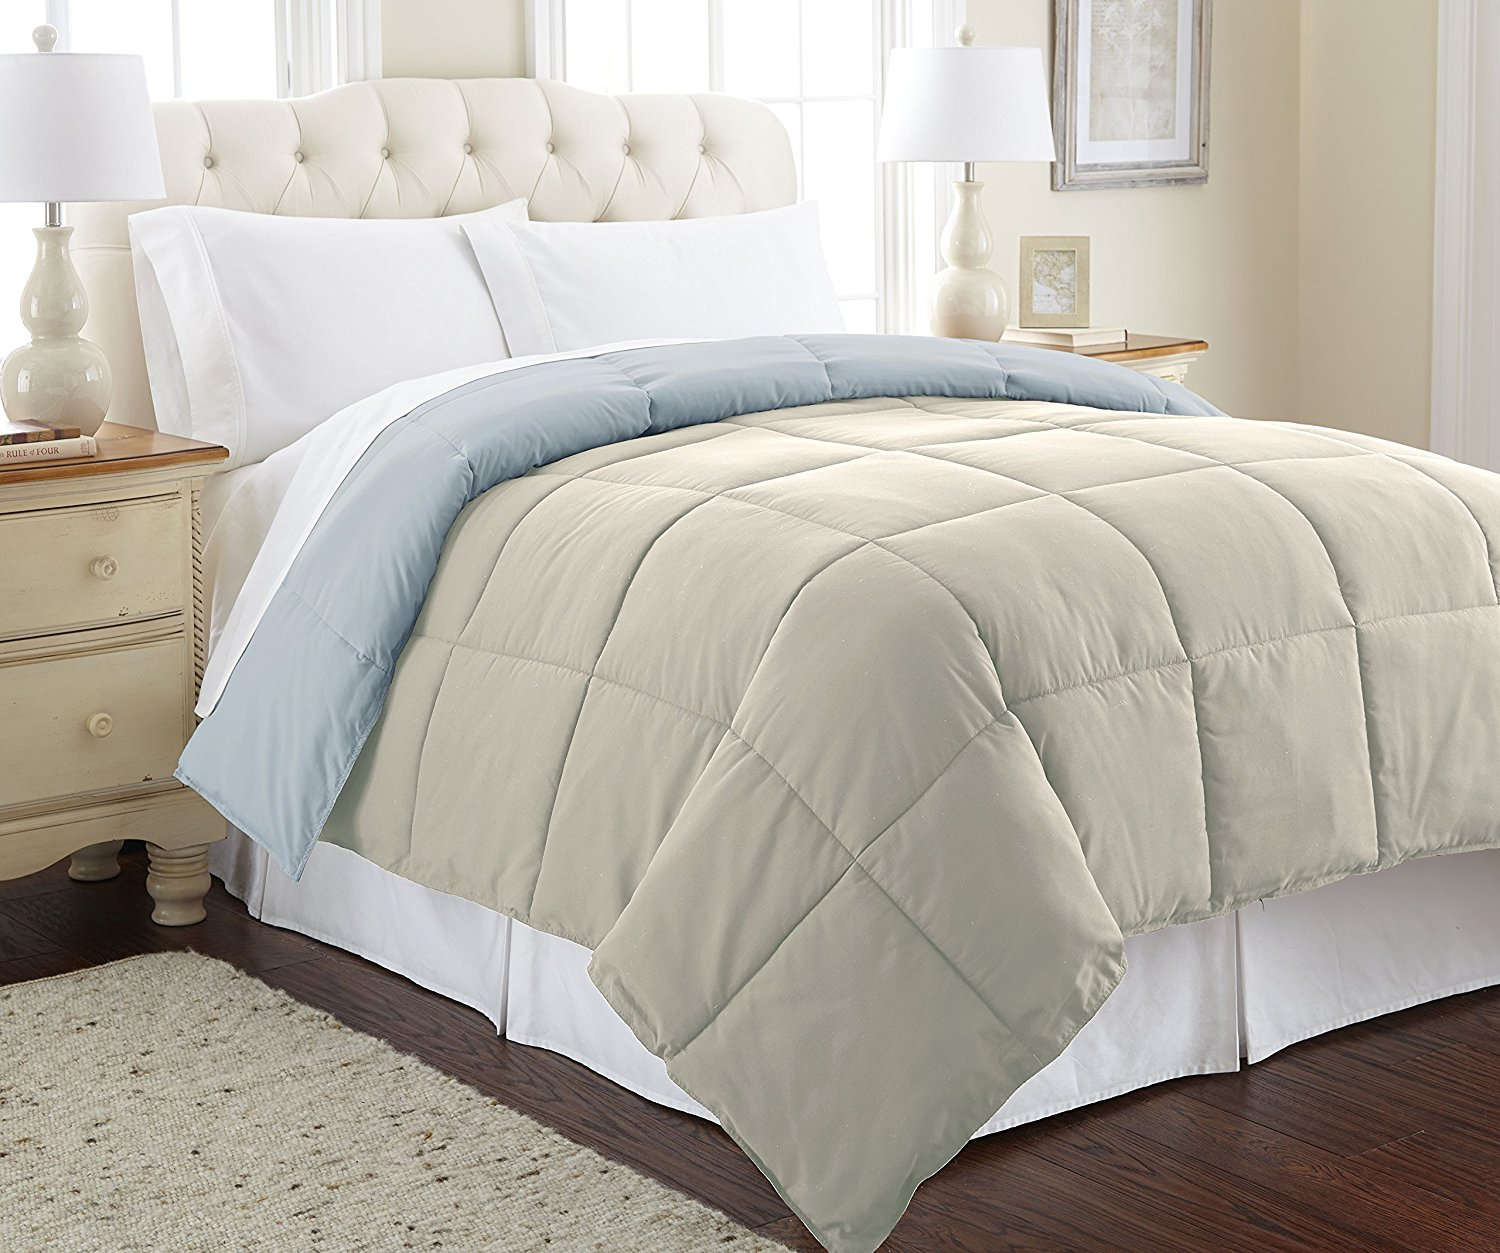 Amazon Deal: Goose Down Alternative Microfiber Quilted Reversible Comforter As Low As $19.99 Plus FREE Shipping!